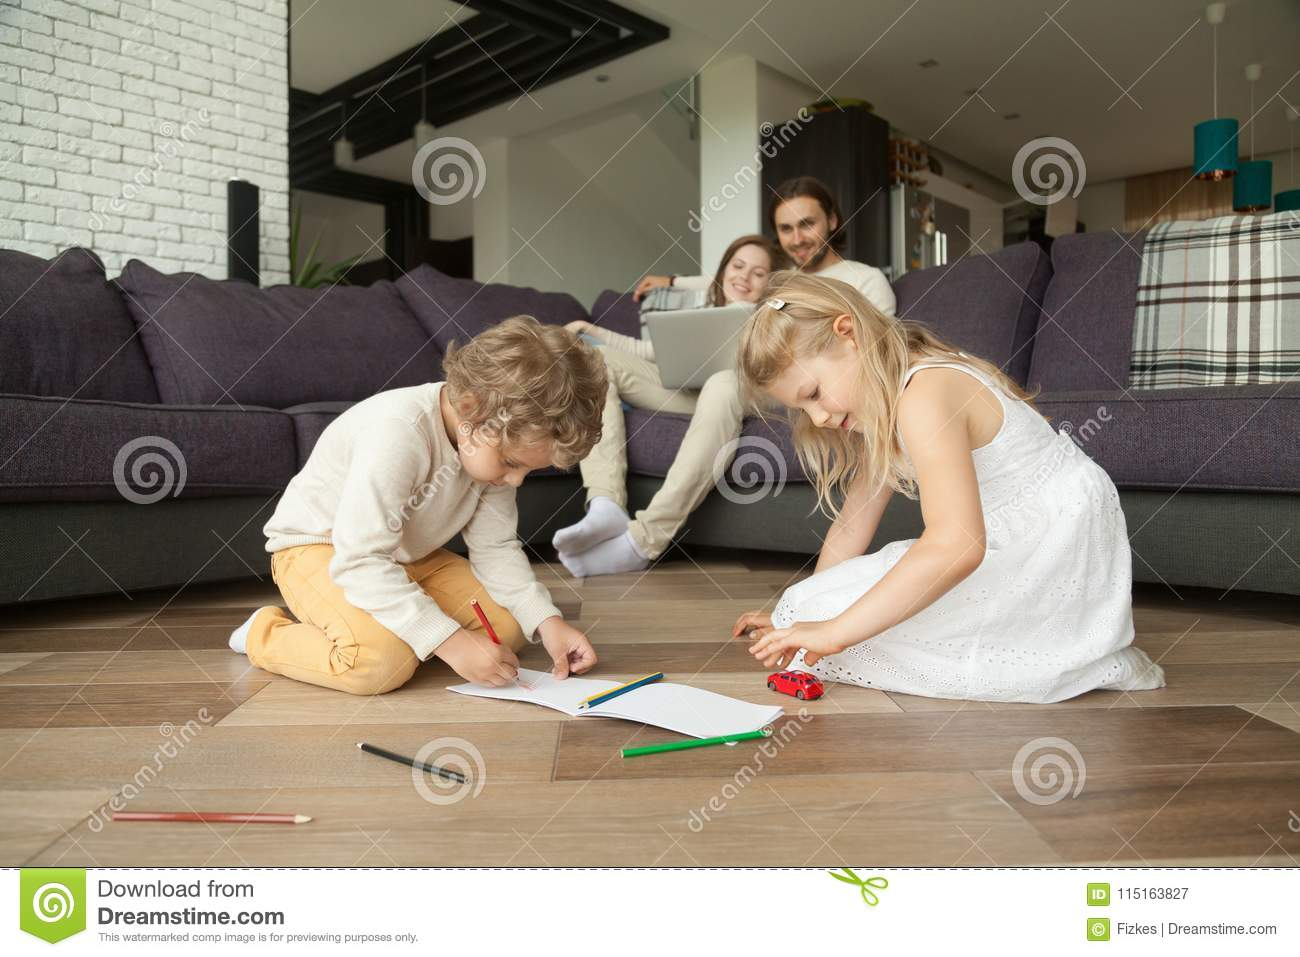 Children having fun drawing together, happy family leisure home